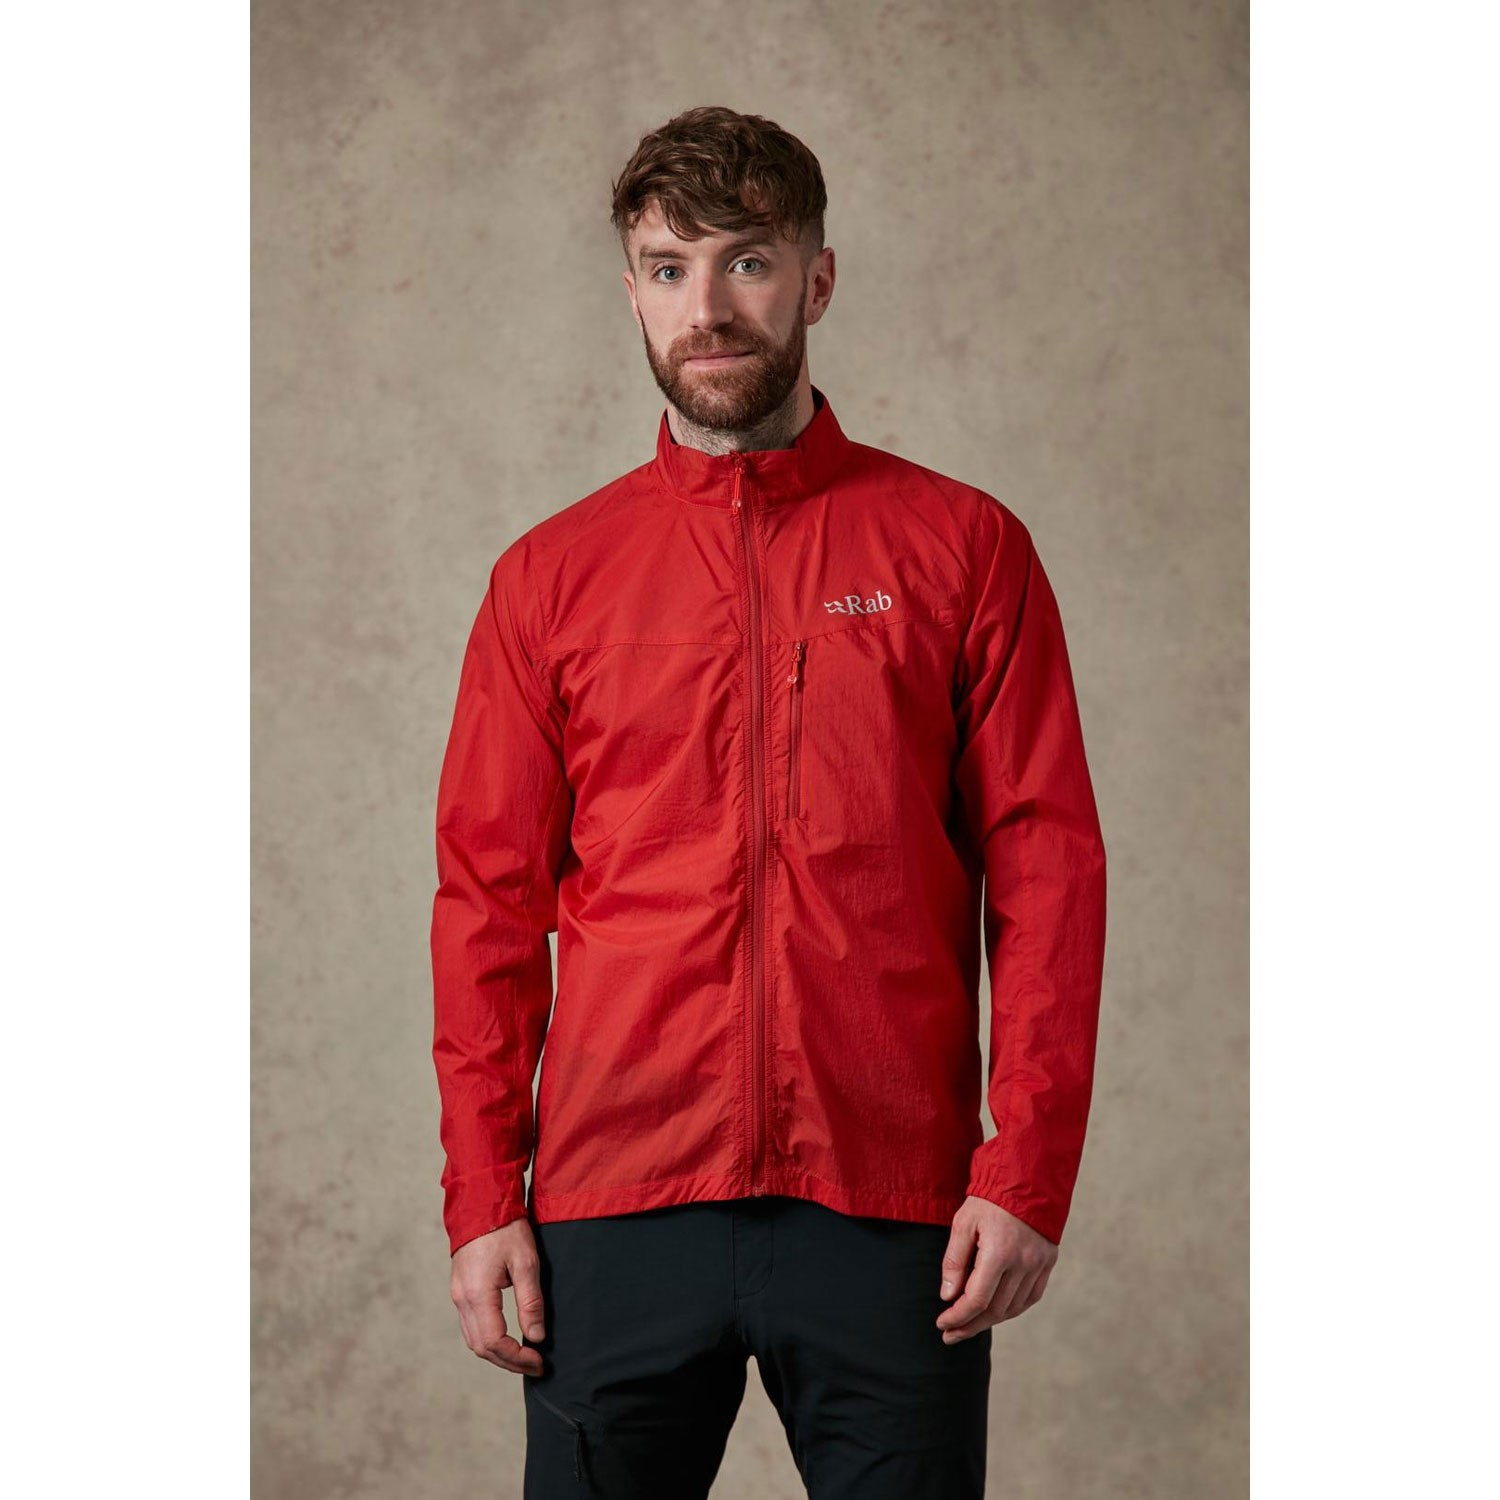 RAB - Vital Men's Windshell Jacket - Dark Horizon